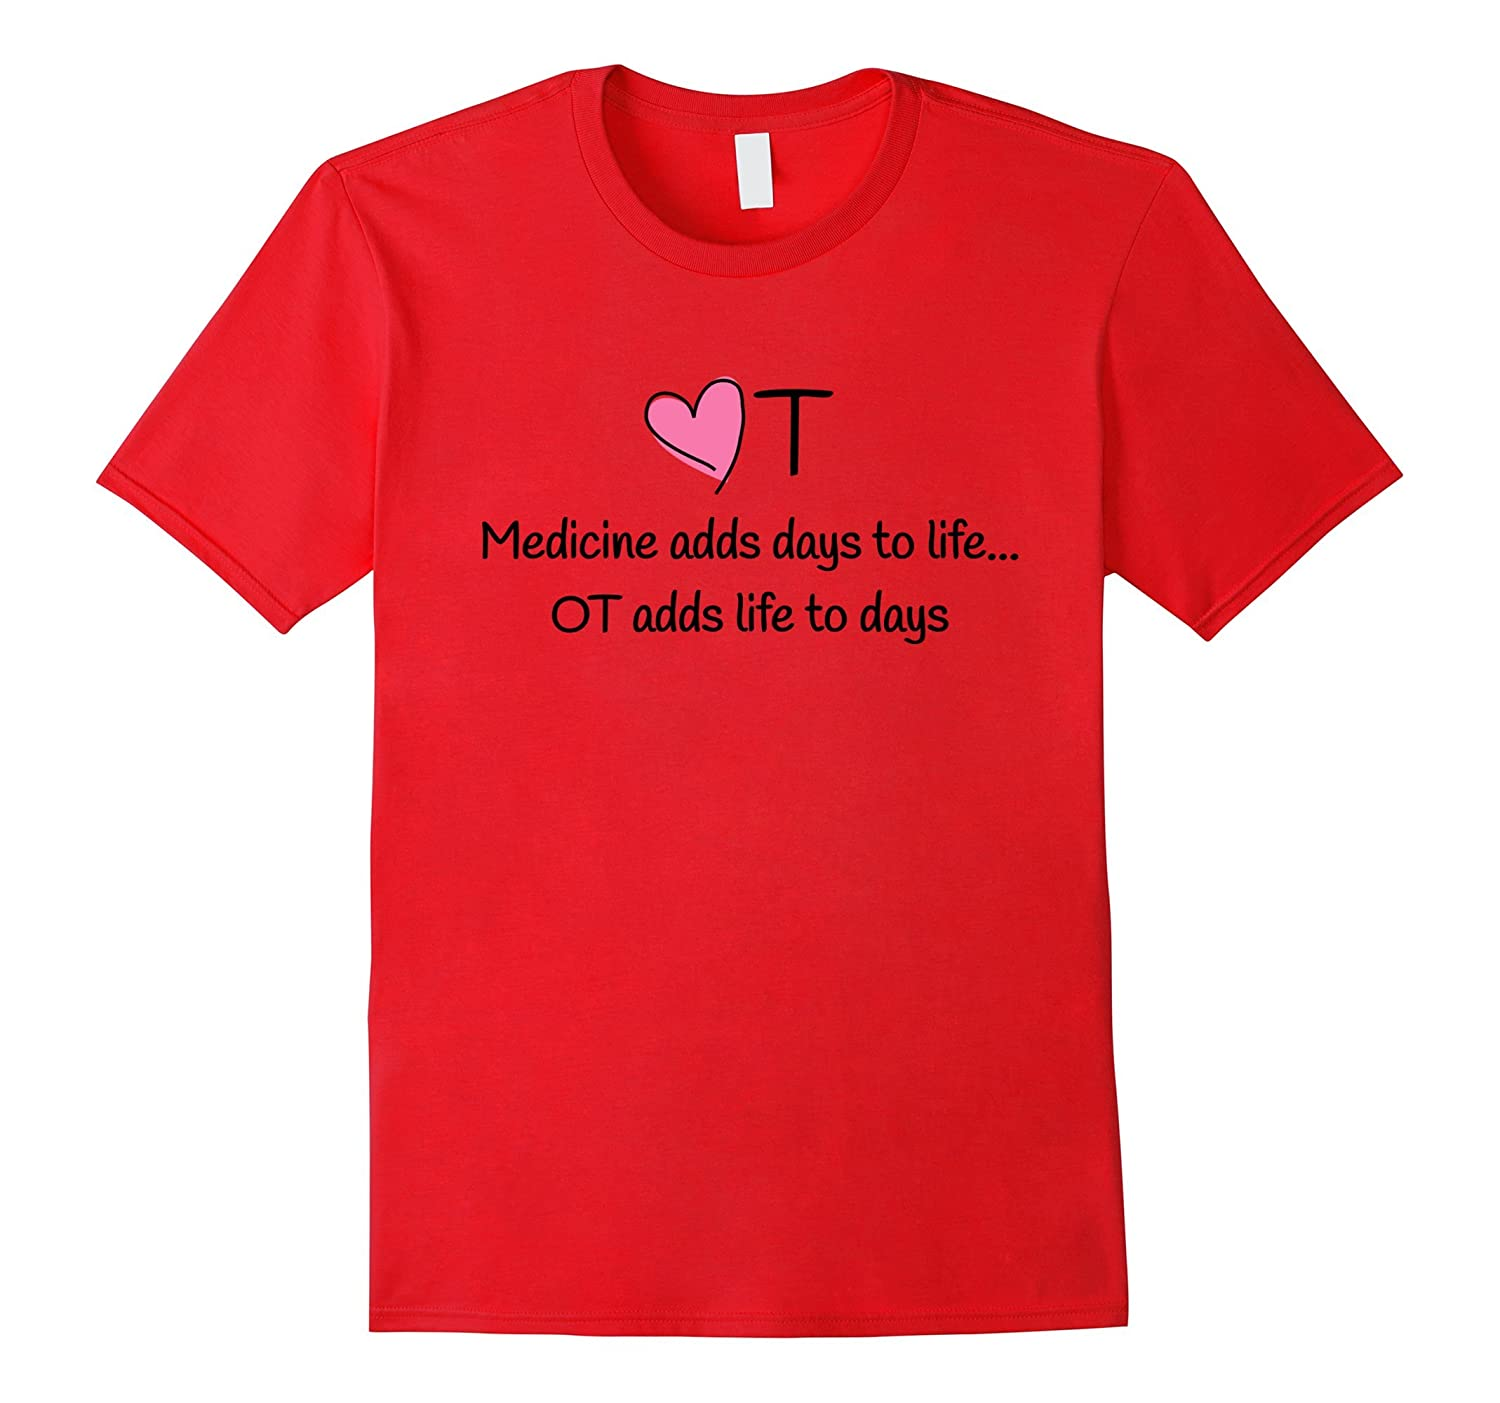 Occupational Therapy Adds Life To Days T-Shirt With OT Heart-TJ